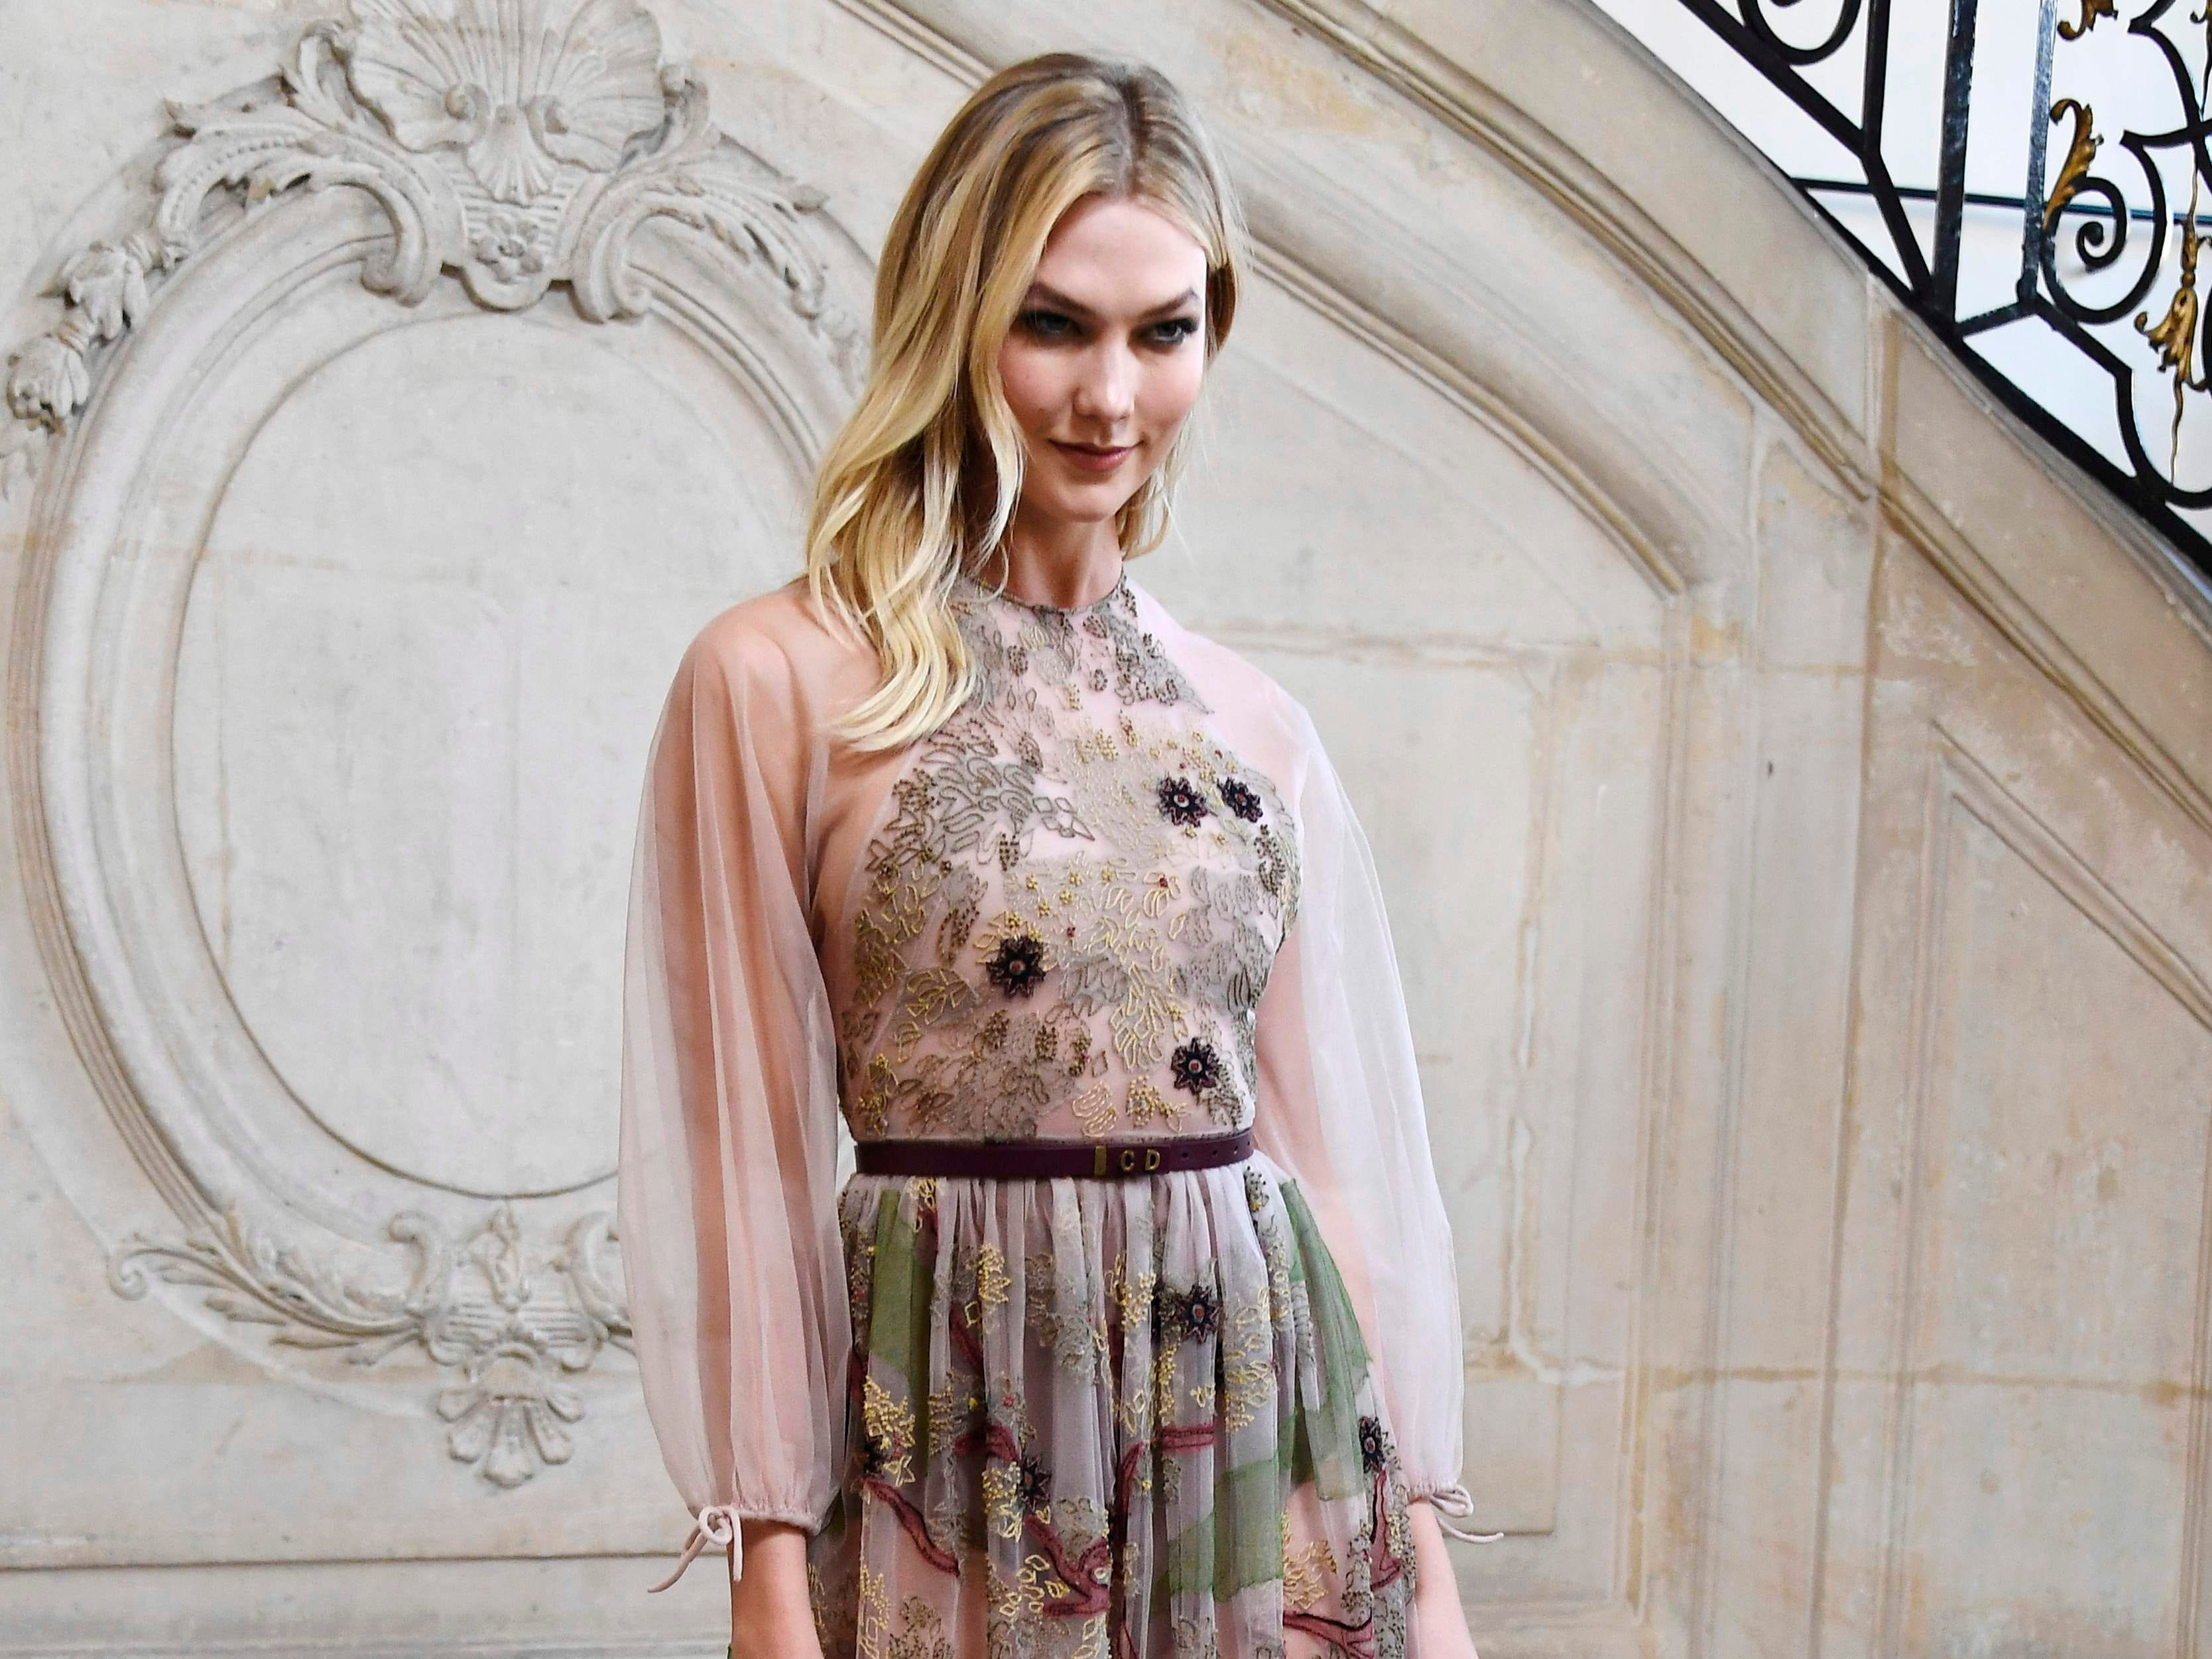 US model Karlie Kloss poses during a photocall prior to the 2019 Spring-Summer Haute Couture collection fashion show by Christian Dior in Paris, on January 21, 2019. (Photo by Anne-Christine POUJOULAT / AFP)ANNE-CHRISTINE POUJOULAT/AFP/Getty Images ORIG FILE ID: AFP_1CG6C7